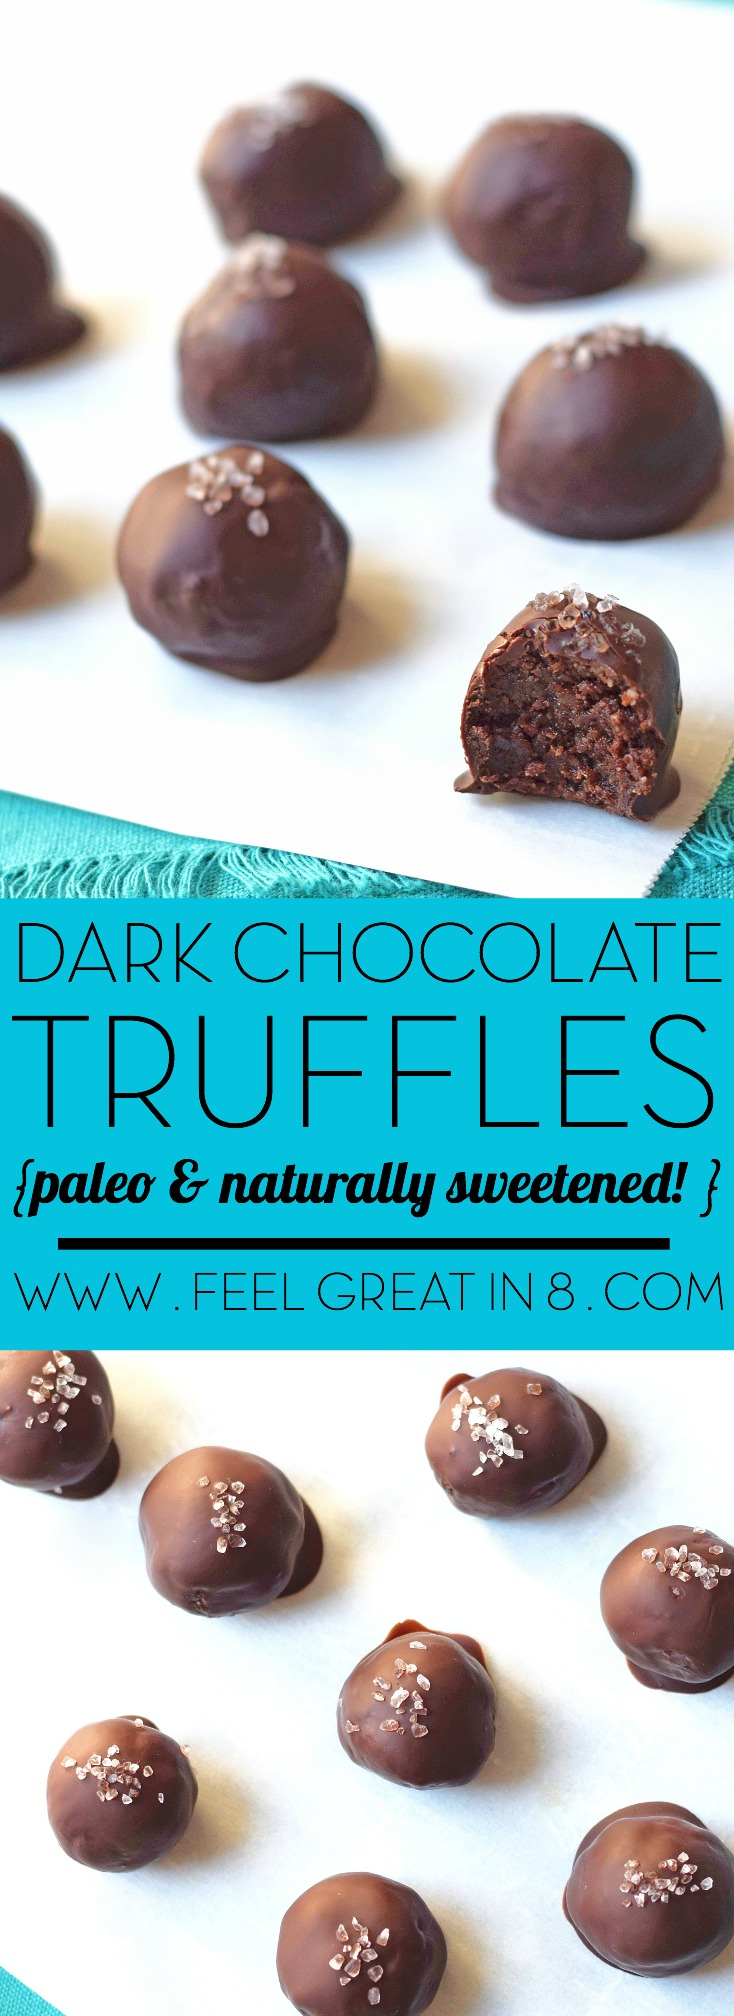 Dark Chocolate Truffles - Feel Great in 8 Blog